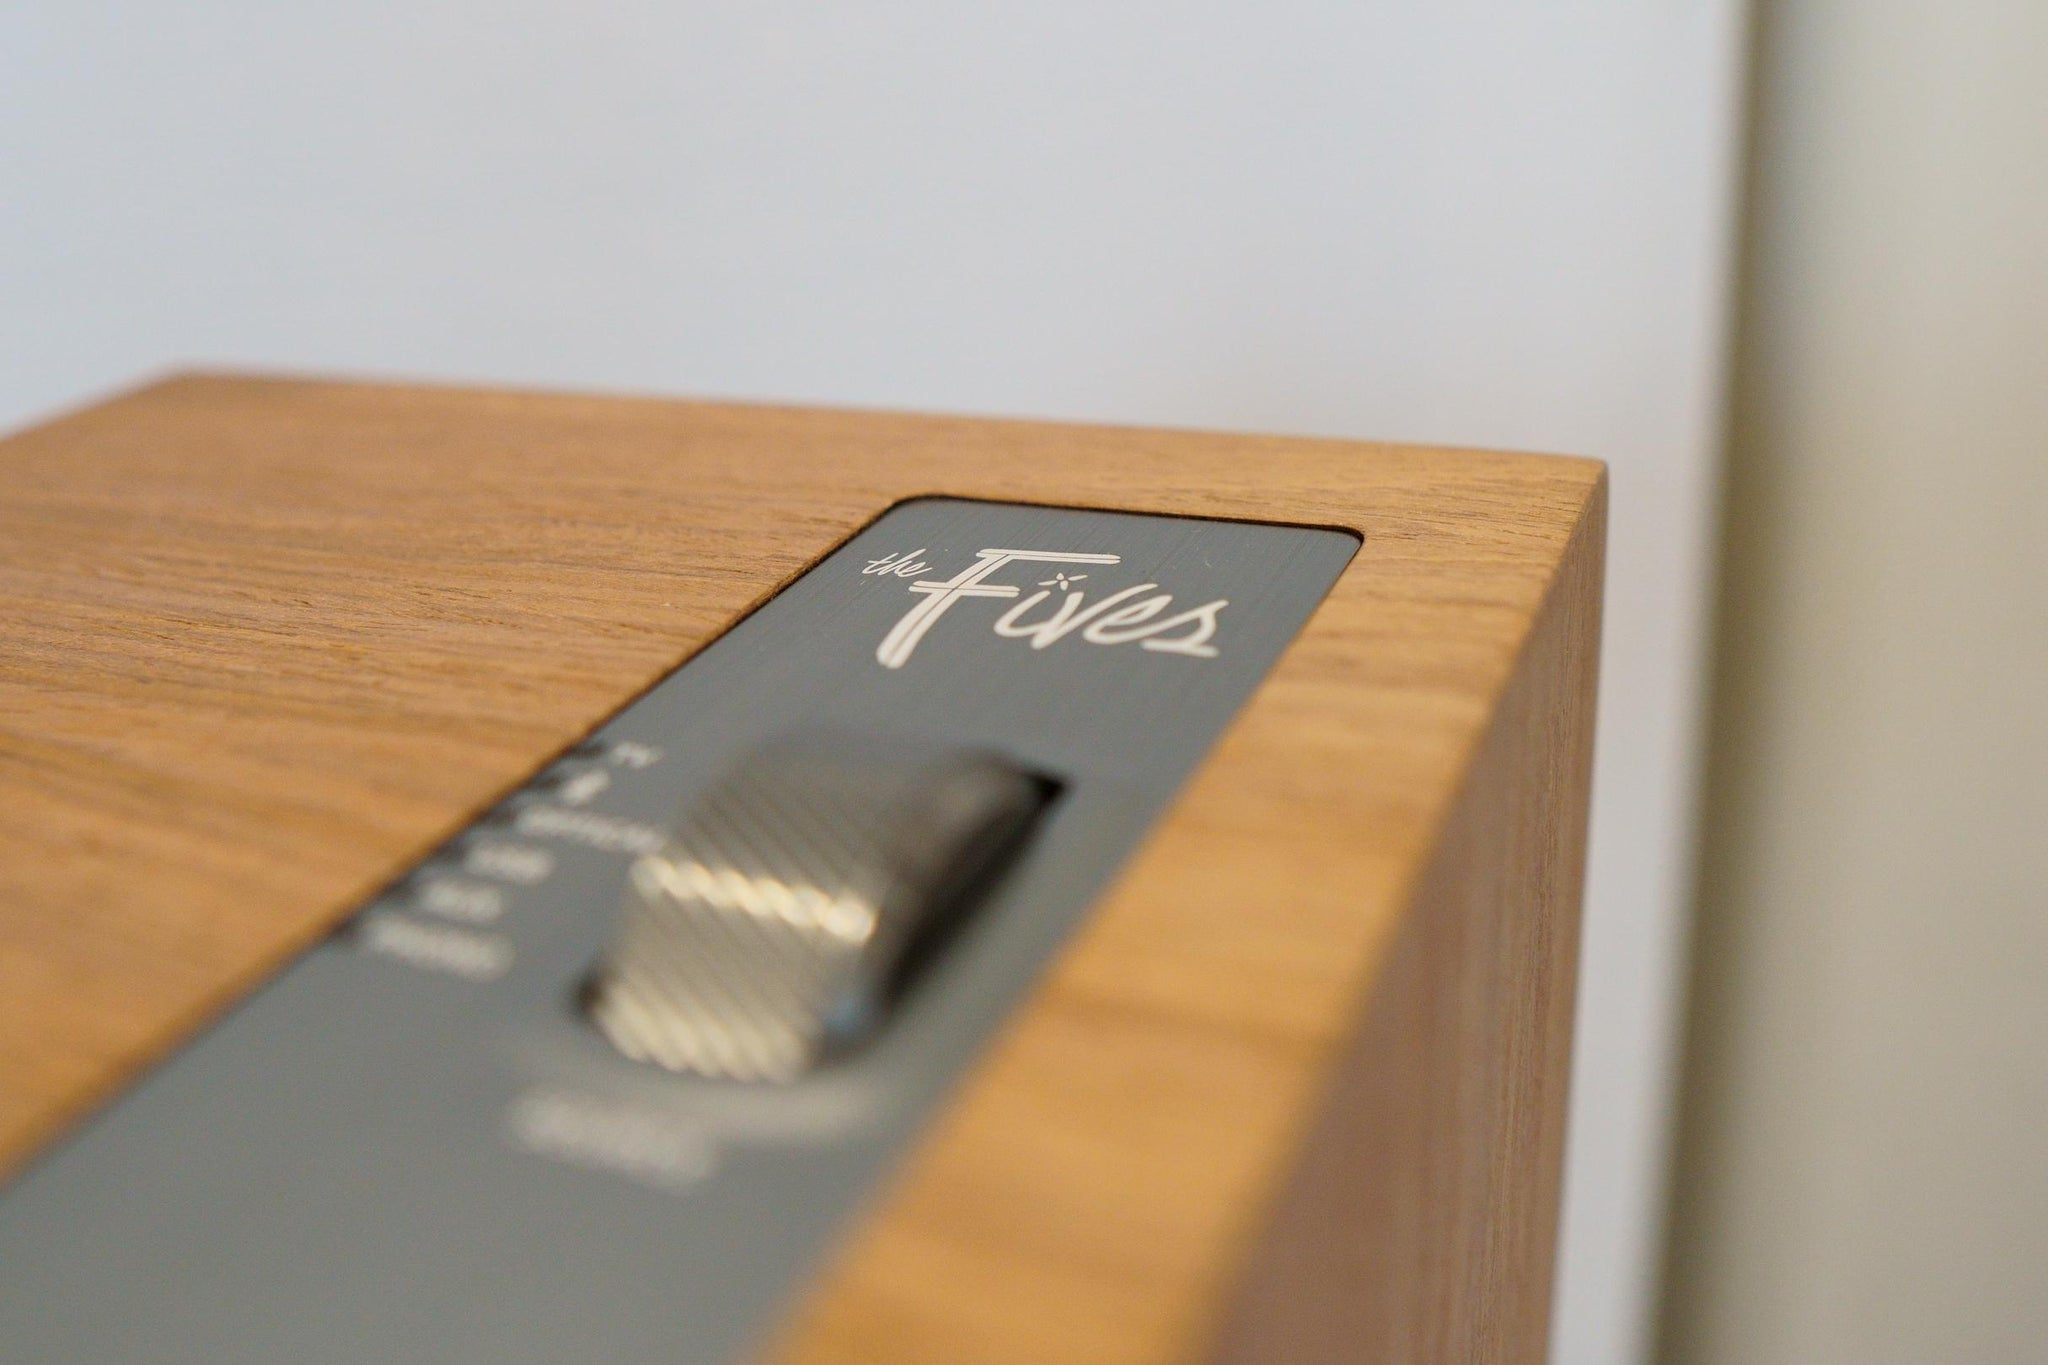 Klipsch The Fives logo on top of the primary speaker